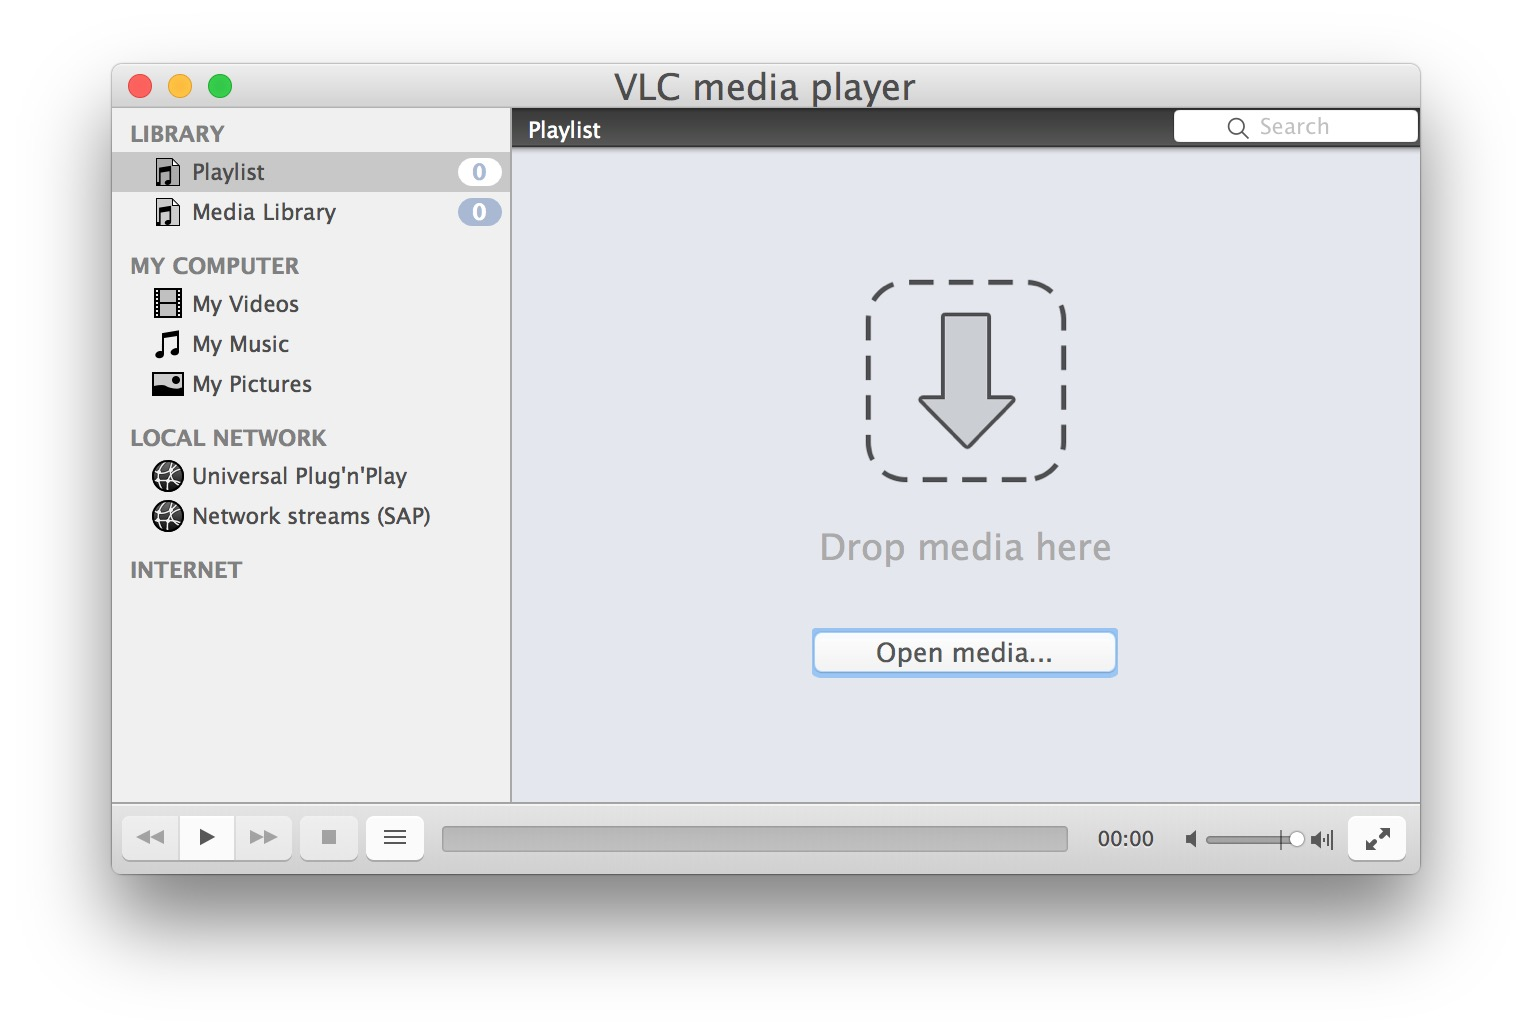 VLC can make video playlists easily